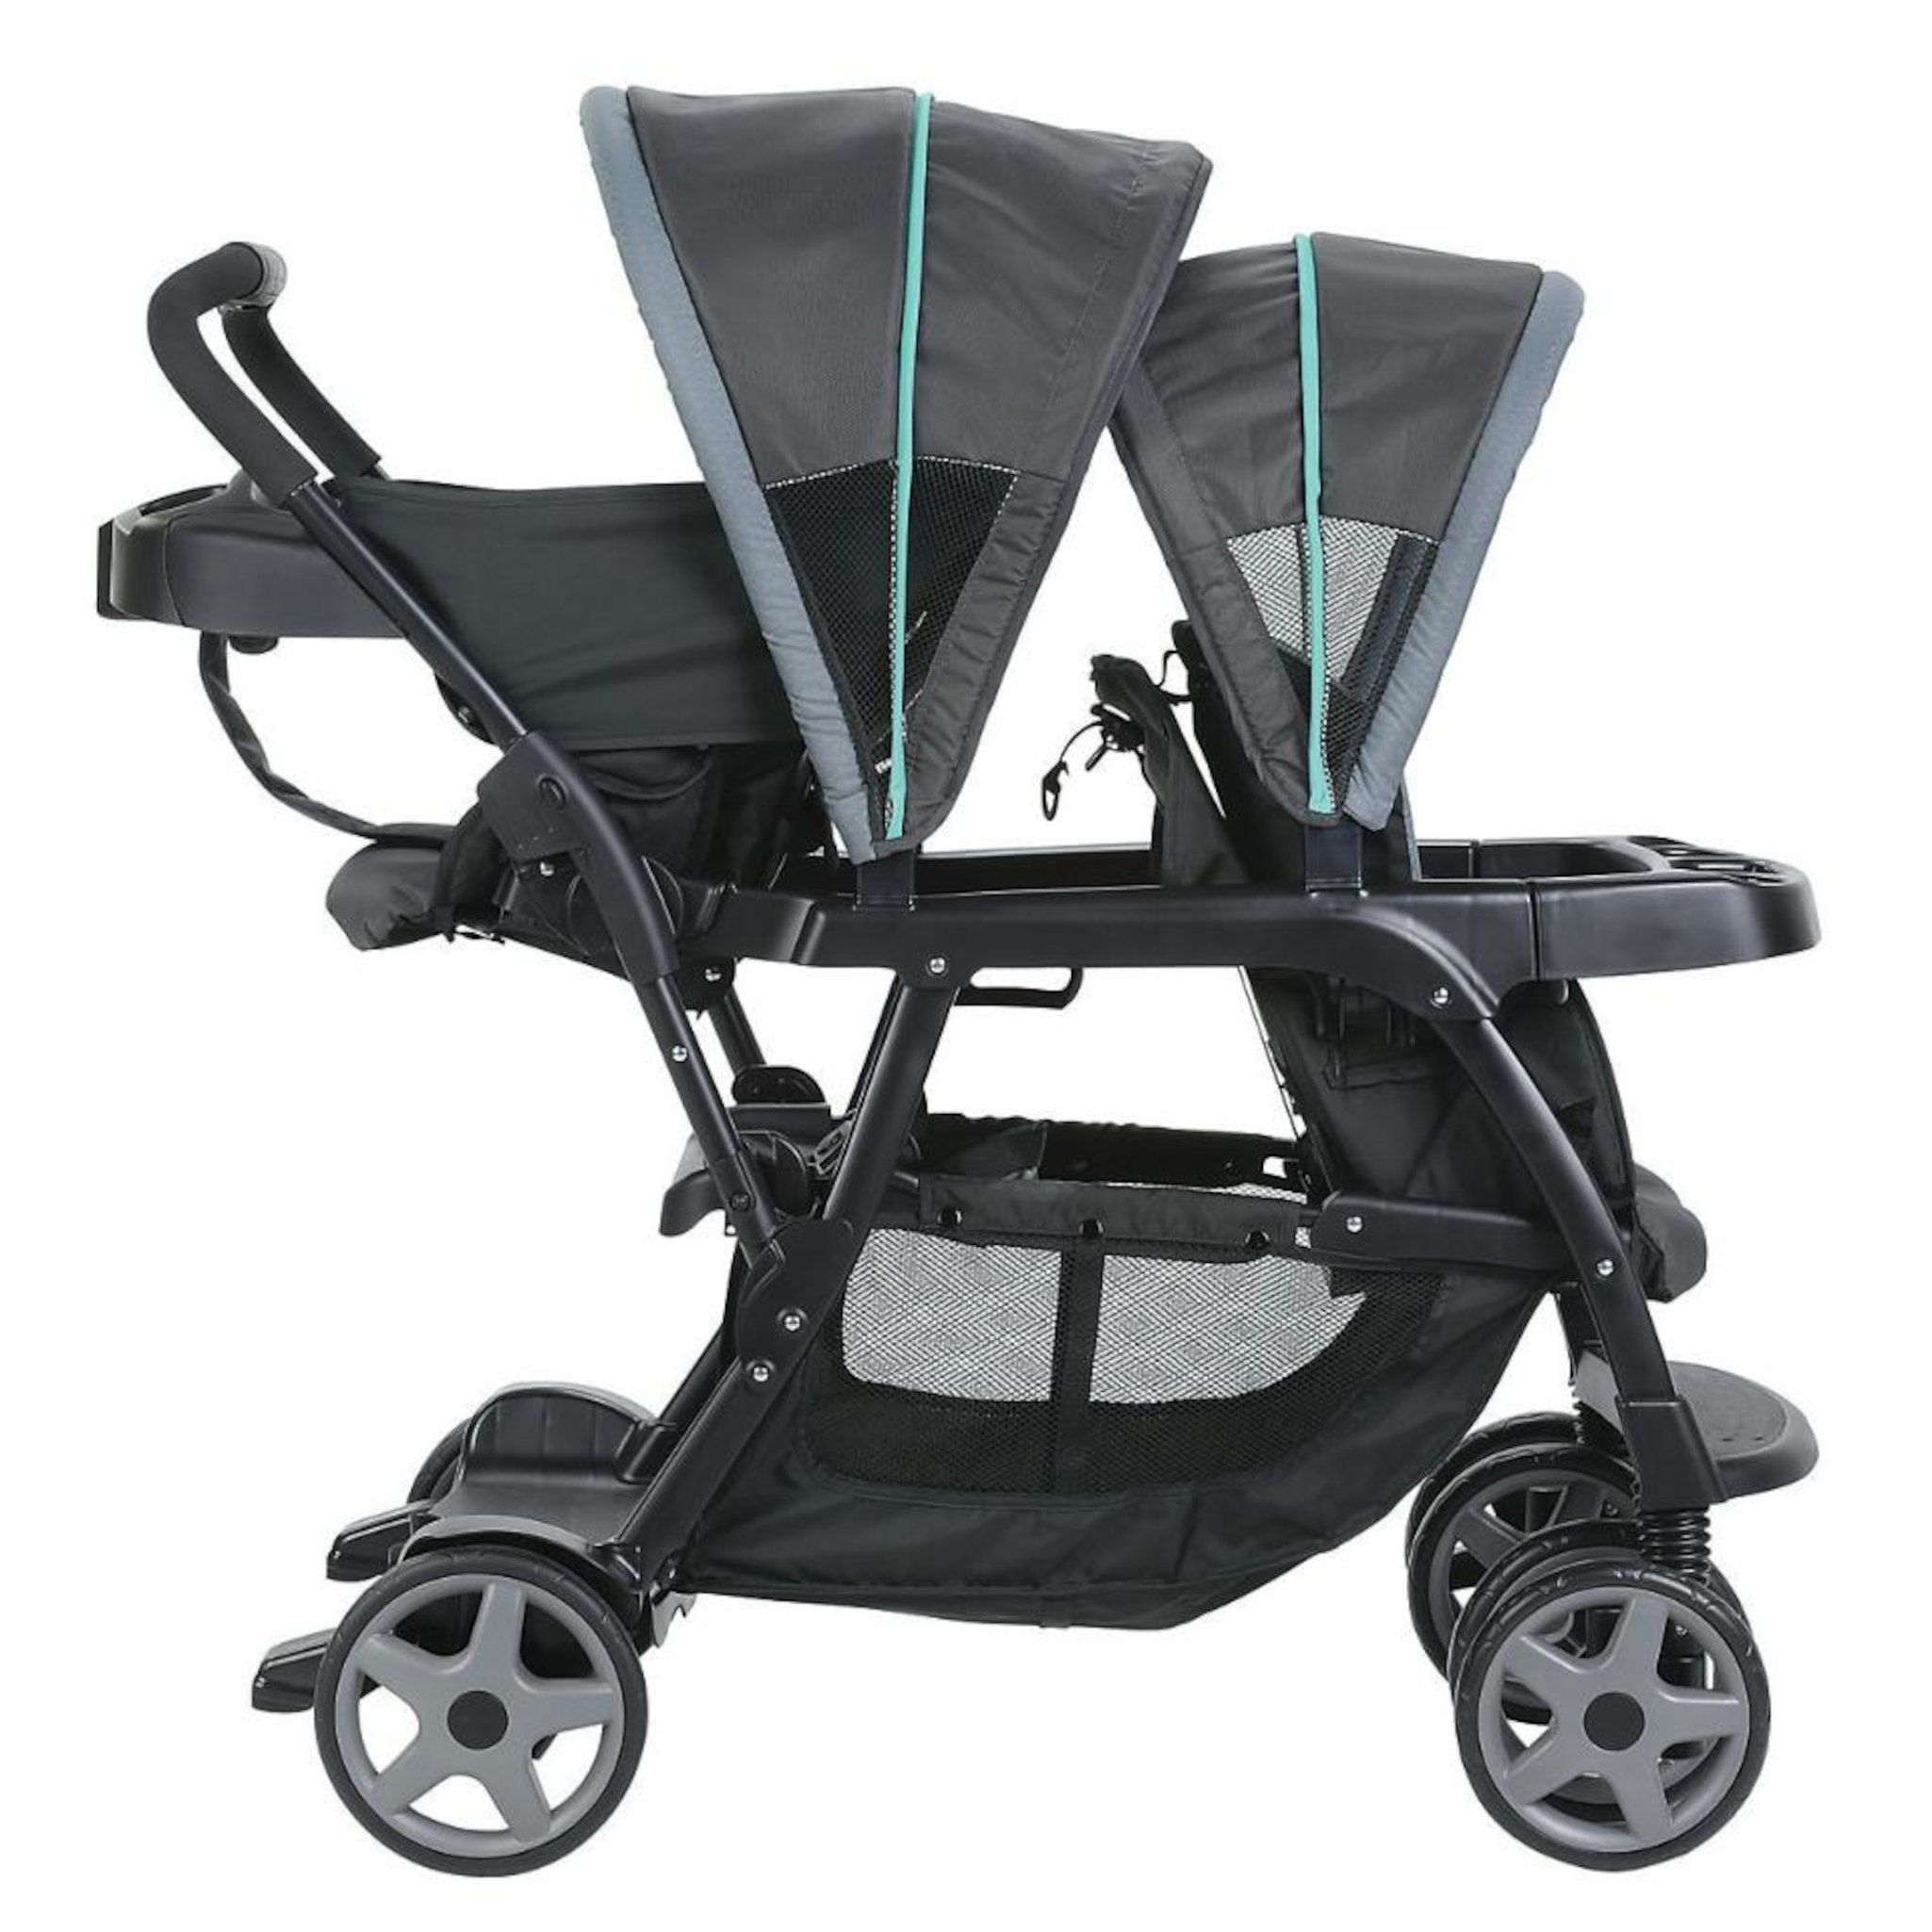 7cf319bde Graco Ready2Grow(TM) Click Connect(TM) Stand and Ride Double Stroller -  Lake Green